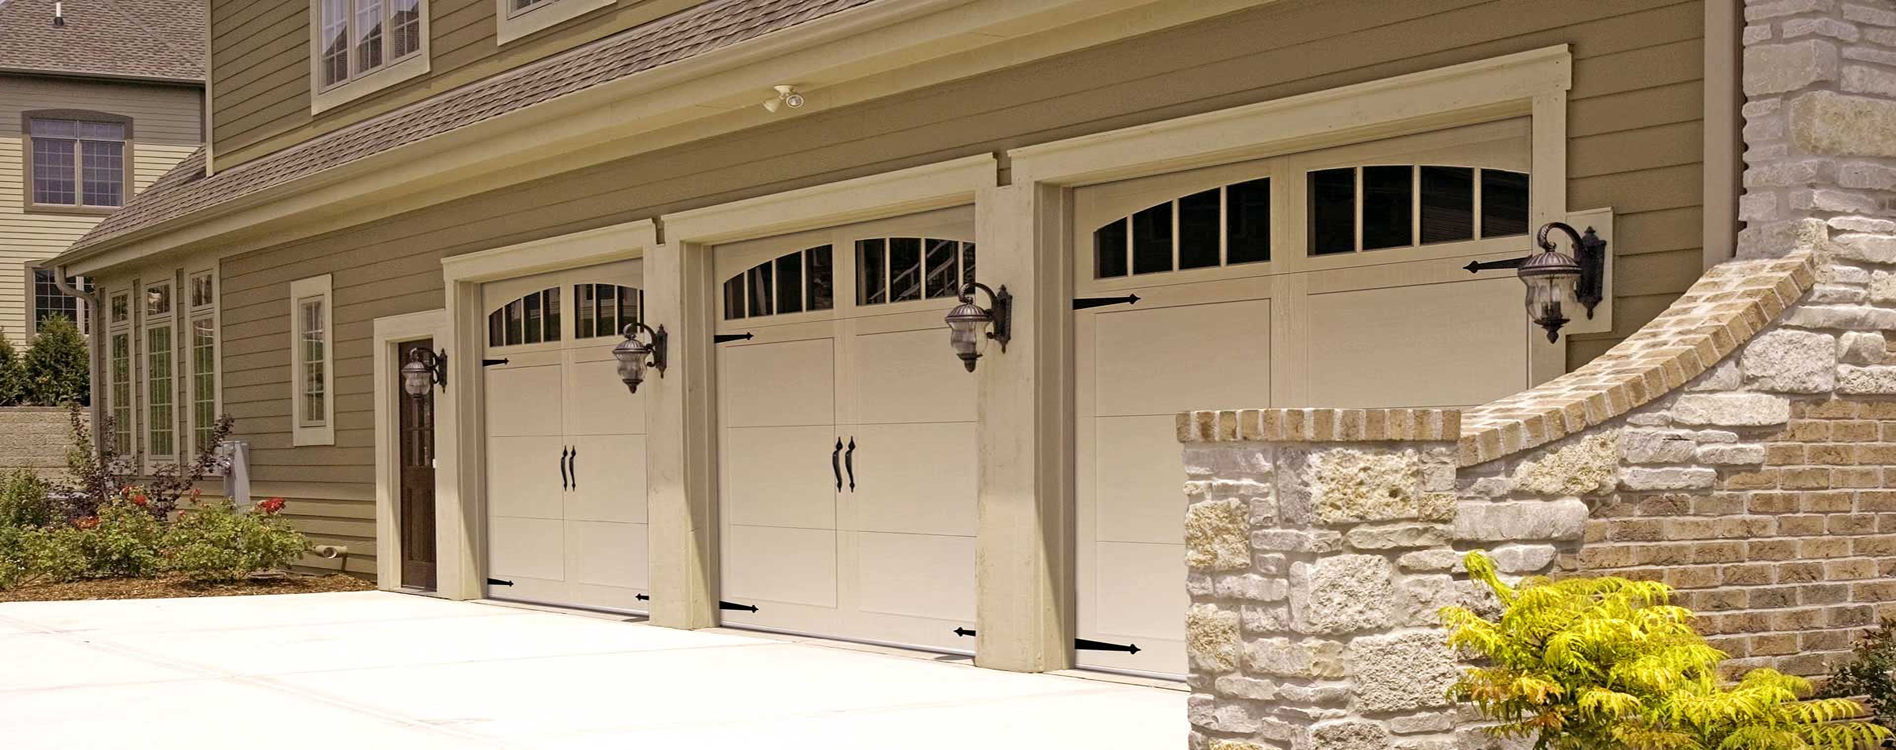 College Park Ga Garage Door Repair A Team Garage Door Repairs